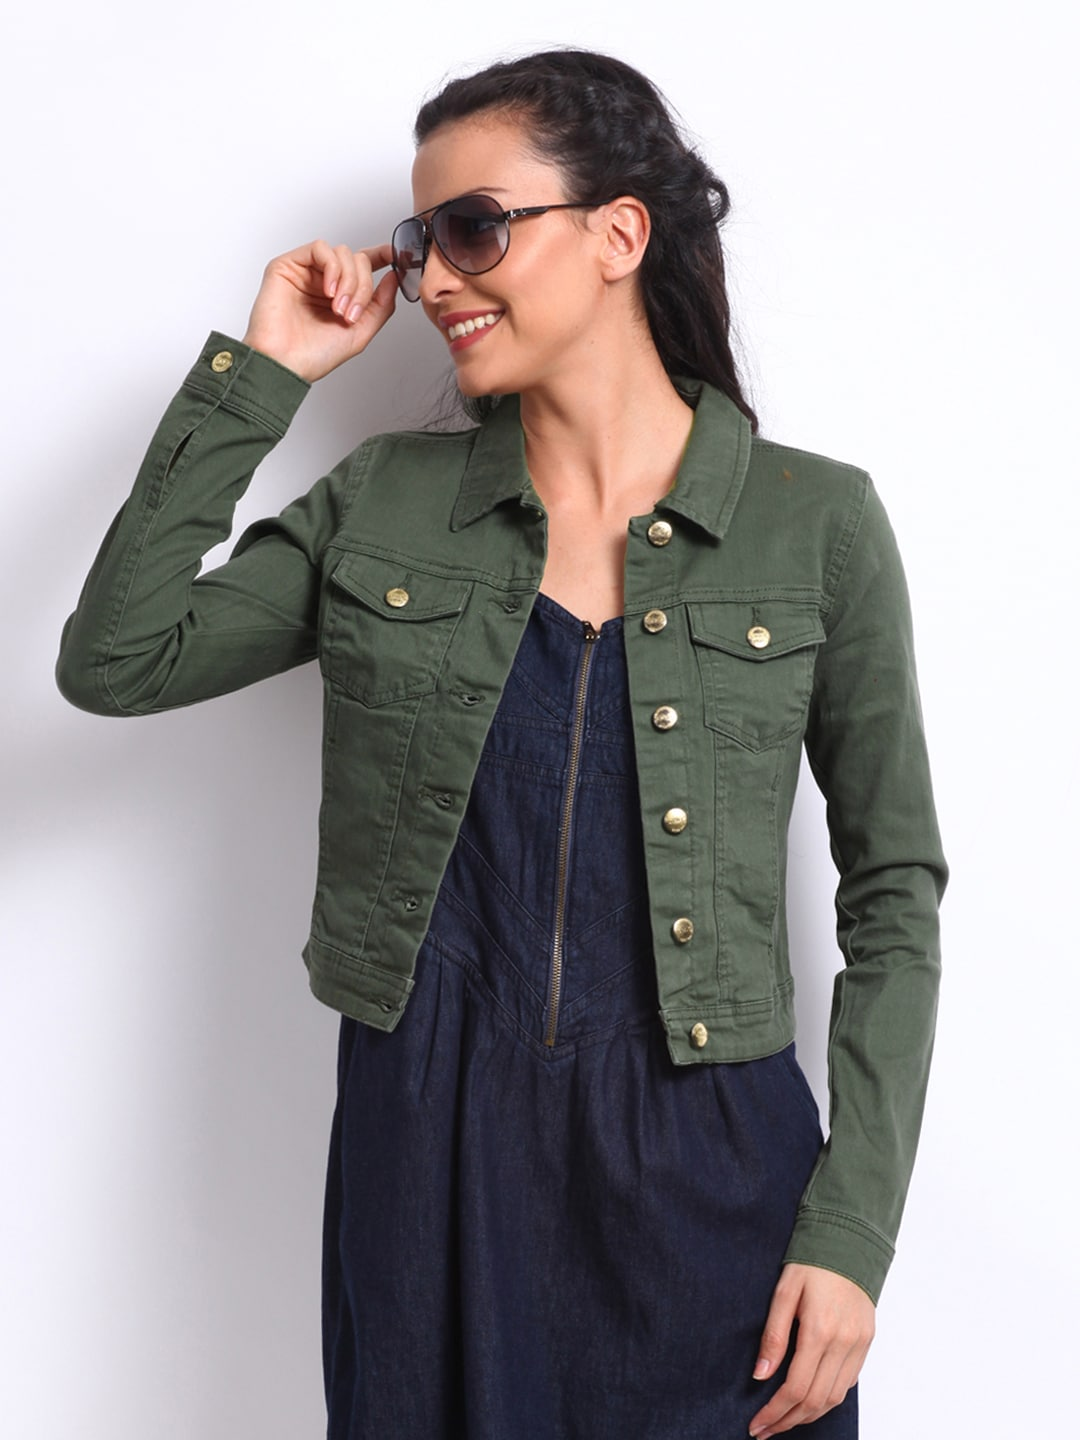 Olive Green Jean Jacket Photo Album - Reikian